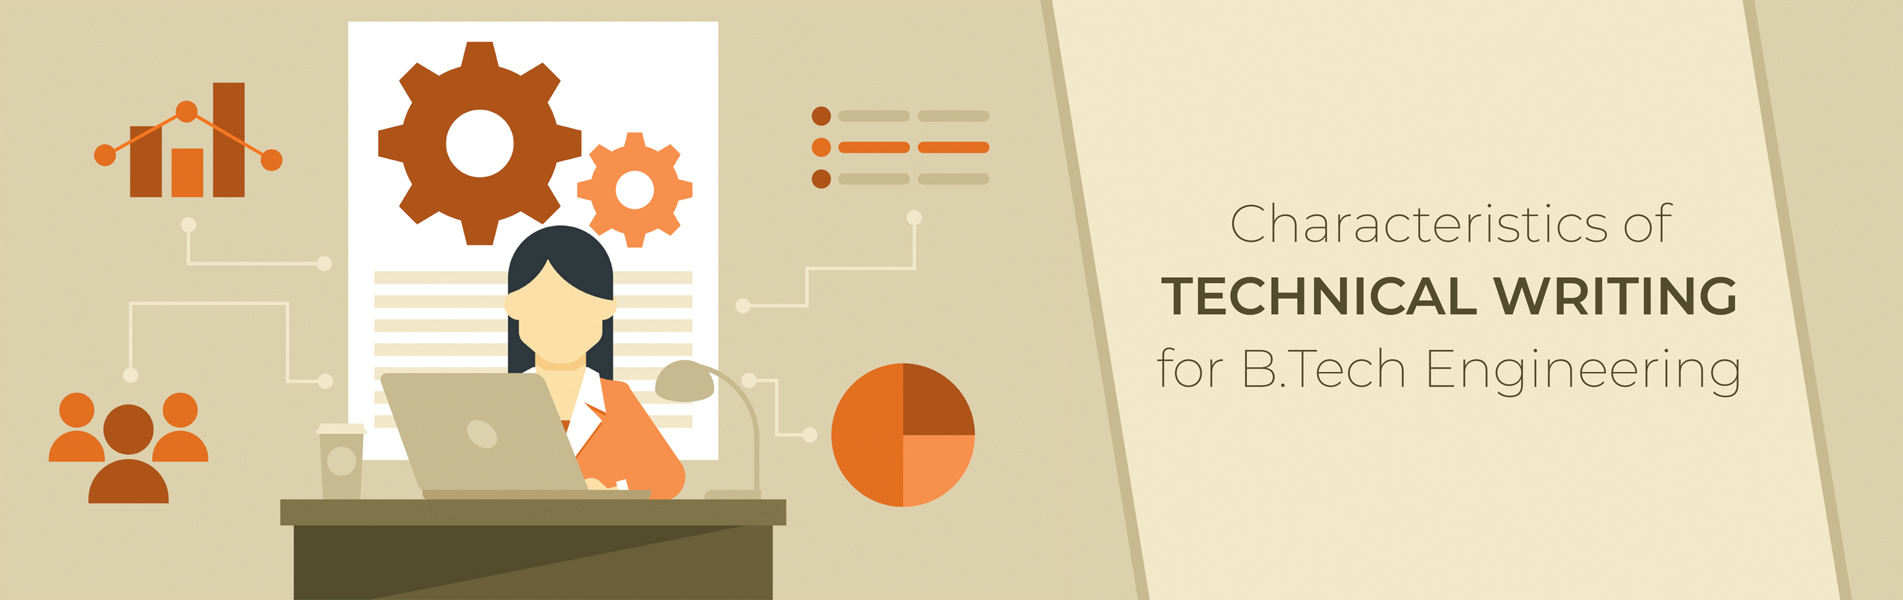 Characteristics-of-technical-writing-for-B-Tech-Engineering